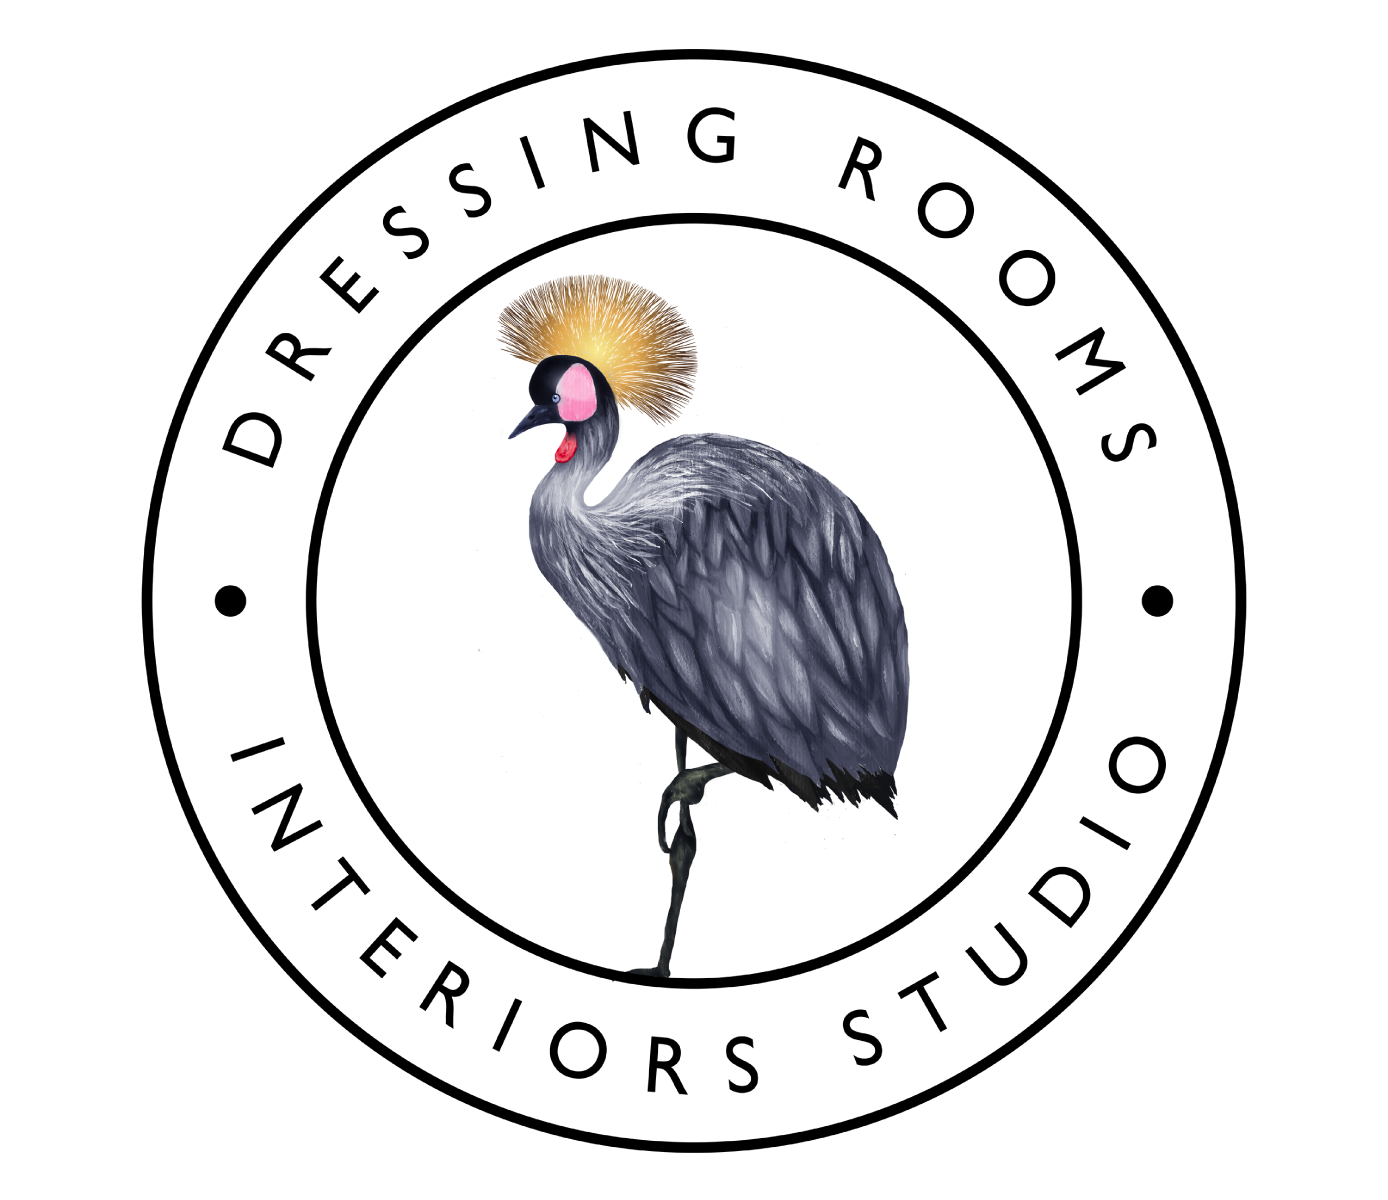 Dressing Rooms Interiors Studio